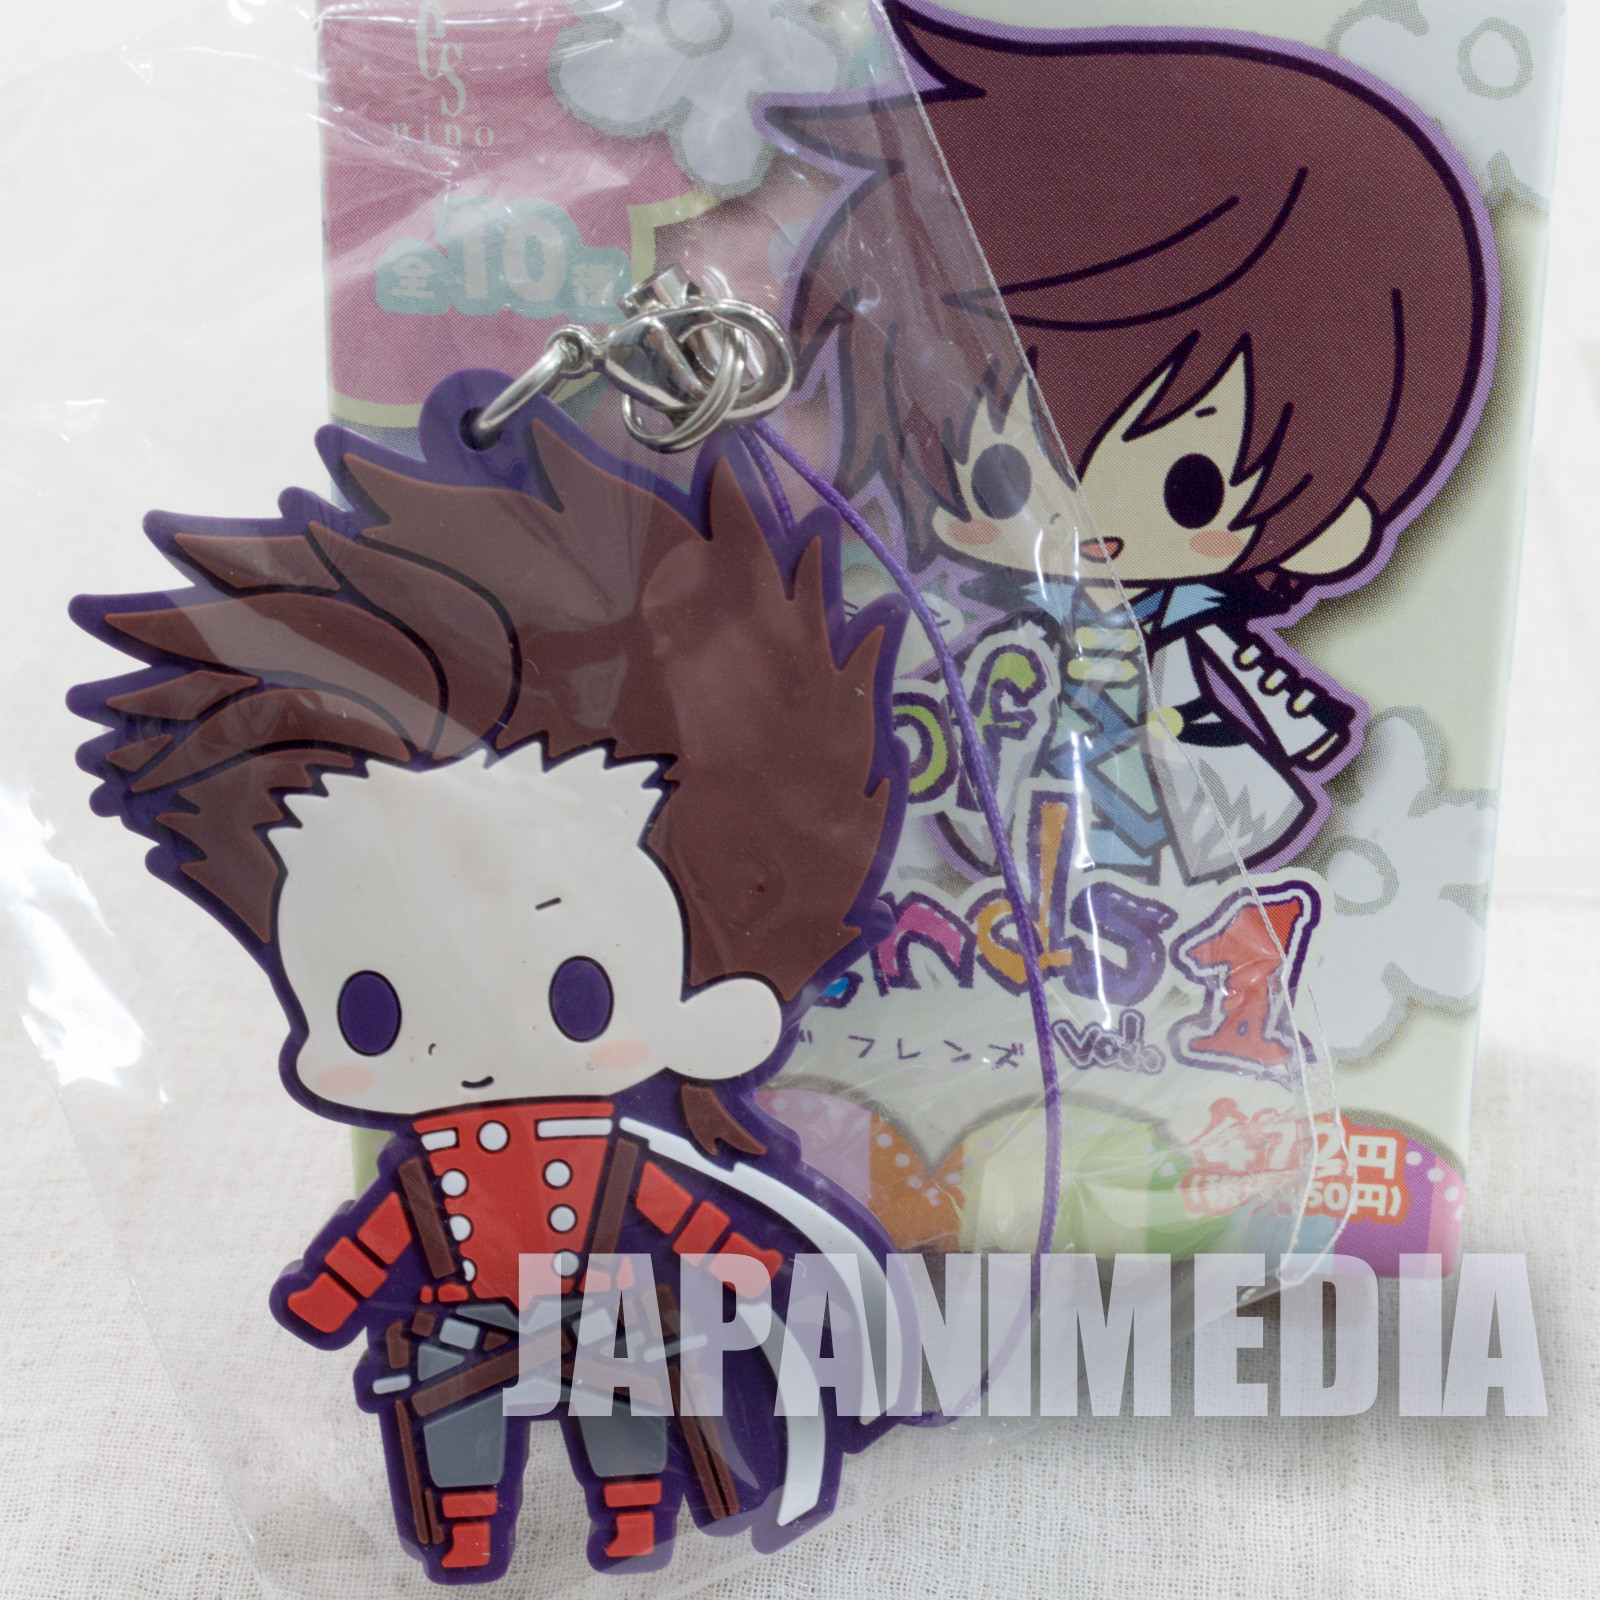 Tales of Fantasia Series Lloyd Irving Symphonia Rubber Mascot Strap JAPAN GAME